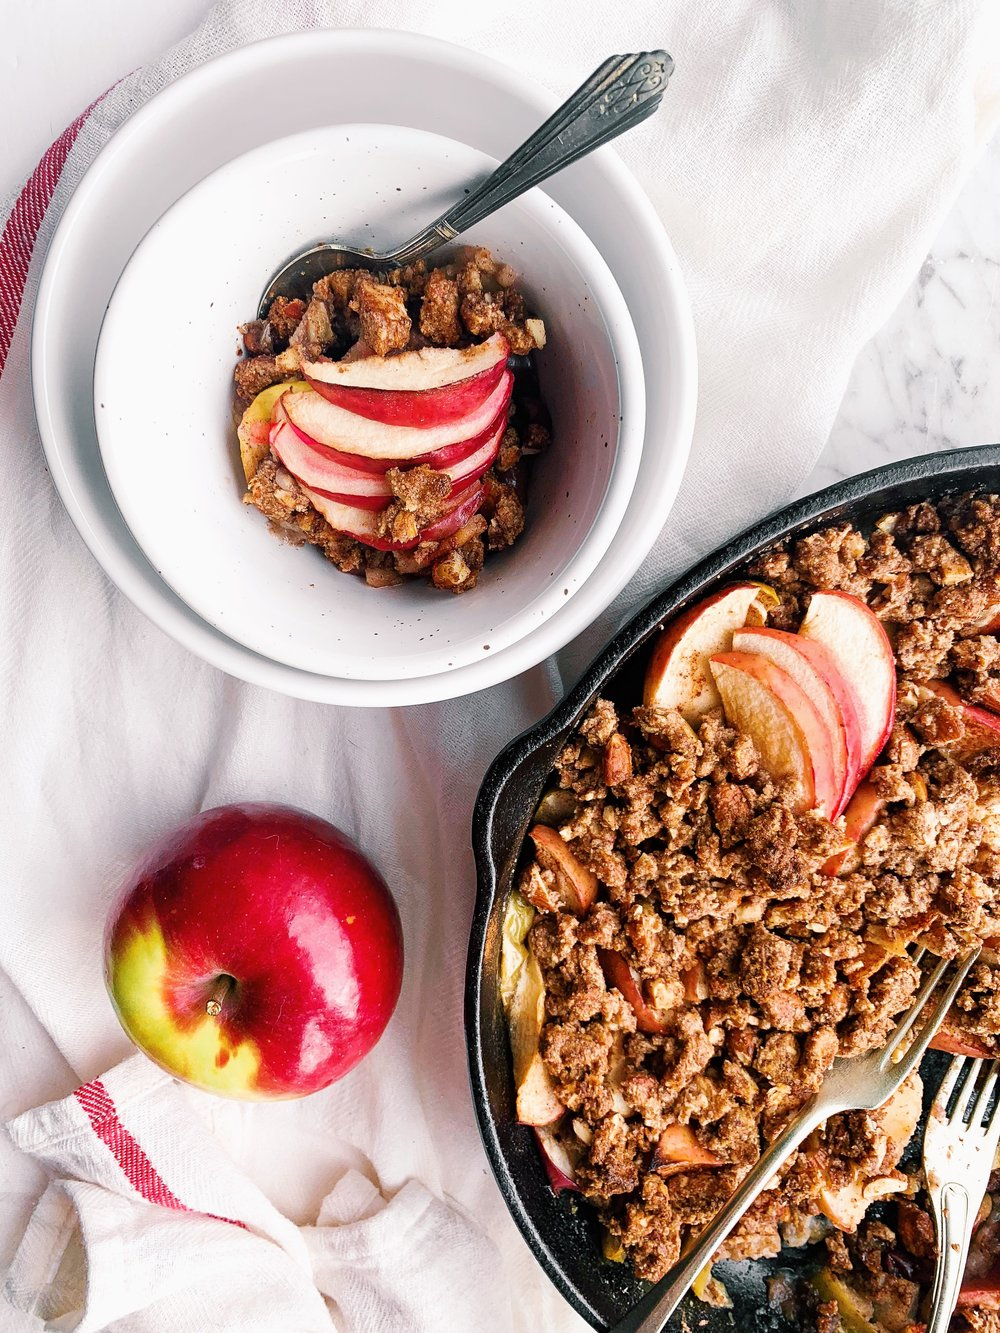 Vegan, paleo refined-sugar free apple crumble that is a perfect fall treat (or breakfast?!) that is perfectly cinnamony and delicious!